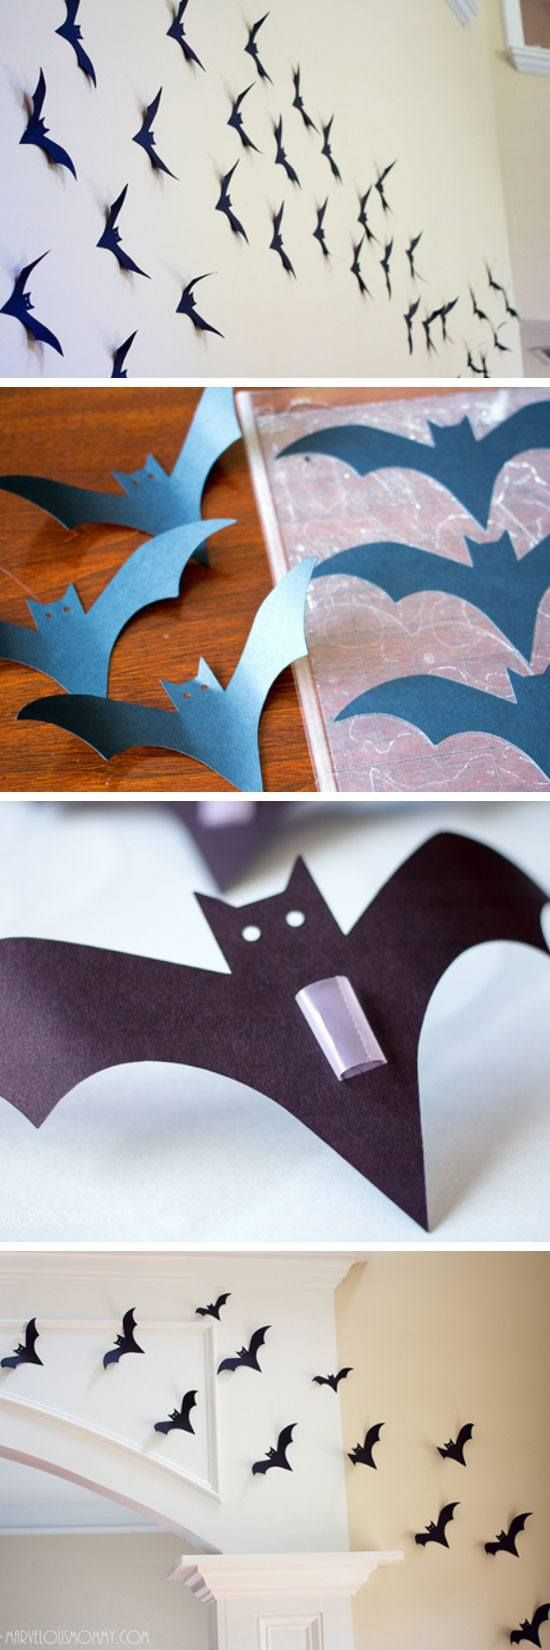 25 diy halloween decorating ideas for kids on a budget - When To Decorate For Halloween